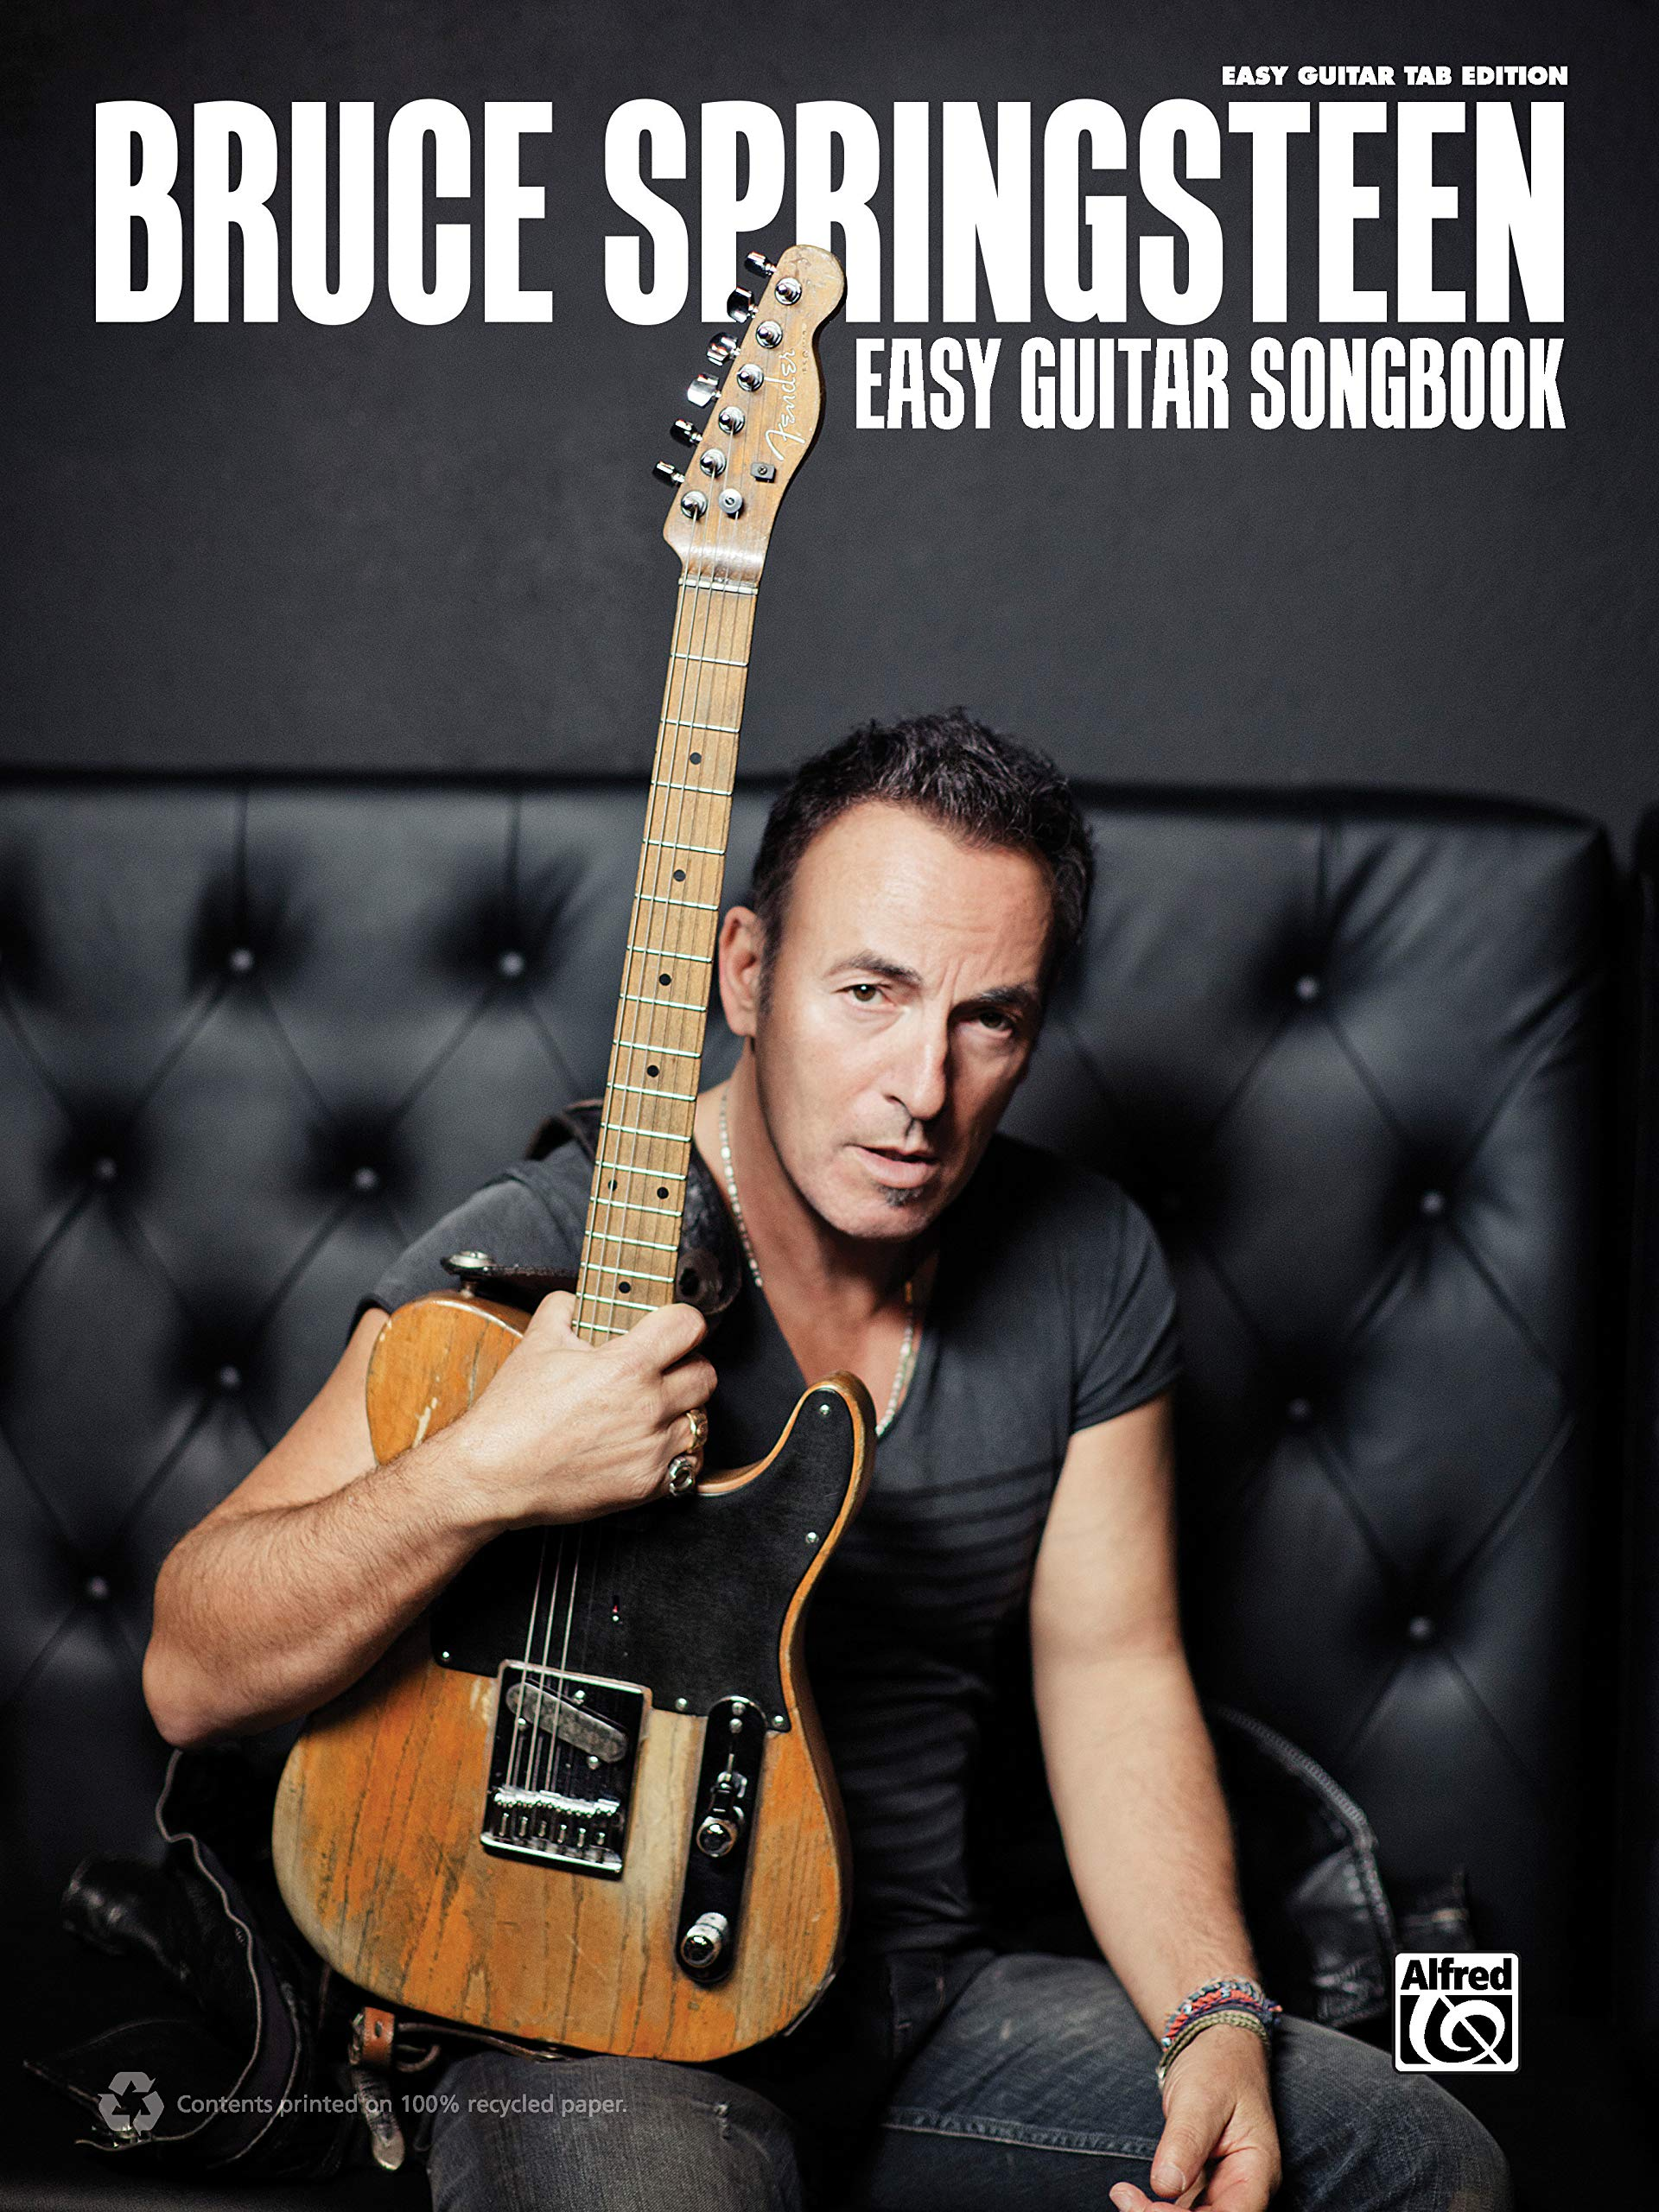 BRUCE SPRINGSTEEN EASY GUITAR (Tab): Amazon.es: Springsteen, Bruce ...